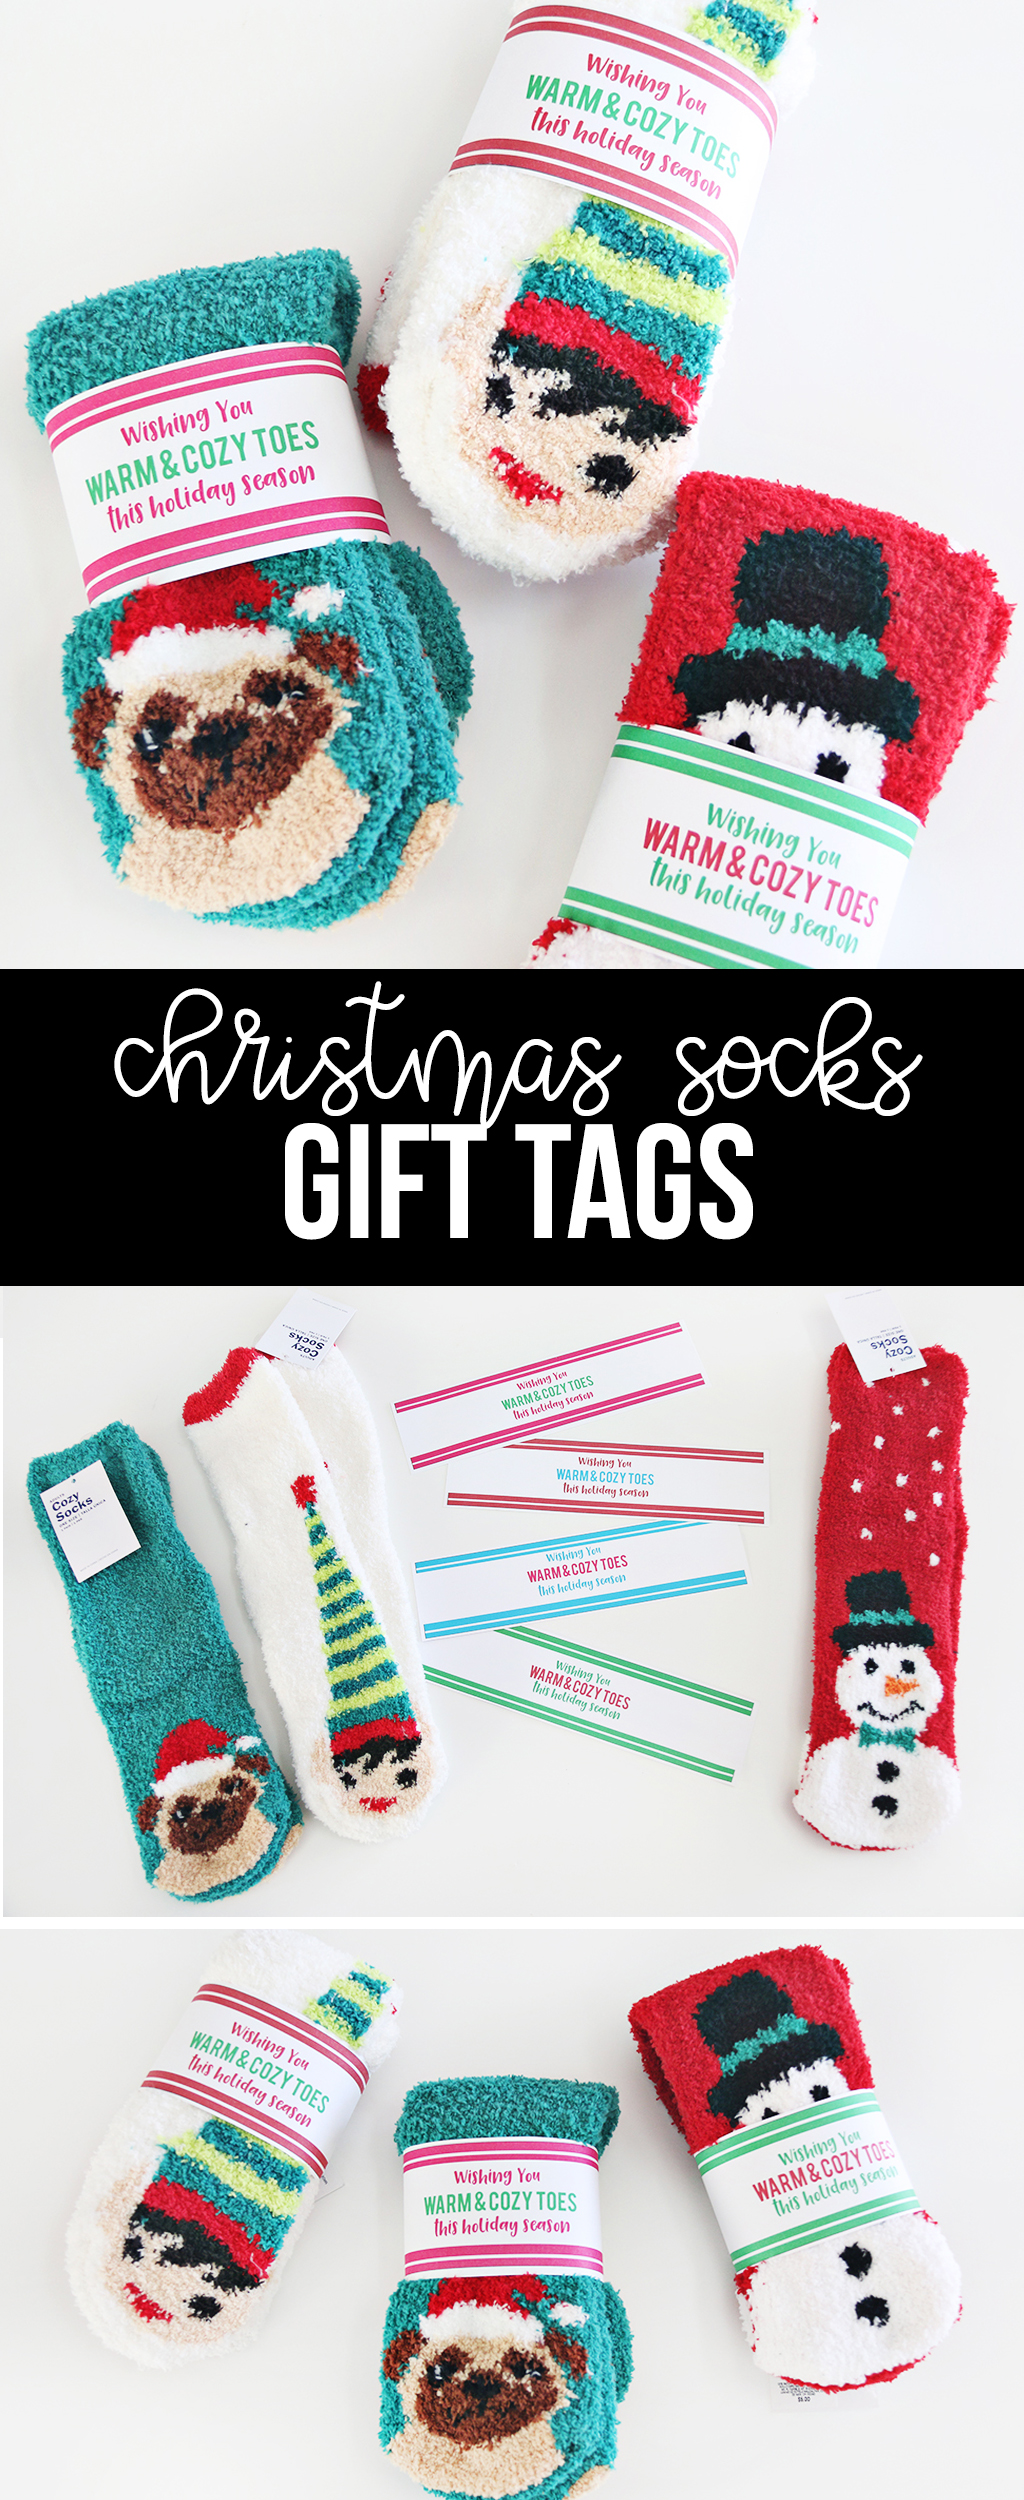 Christmas Socks Gift Tags